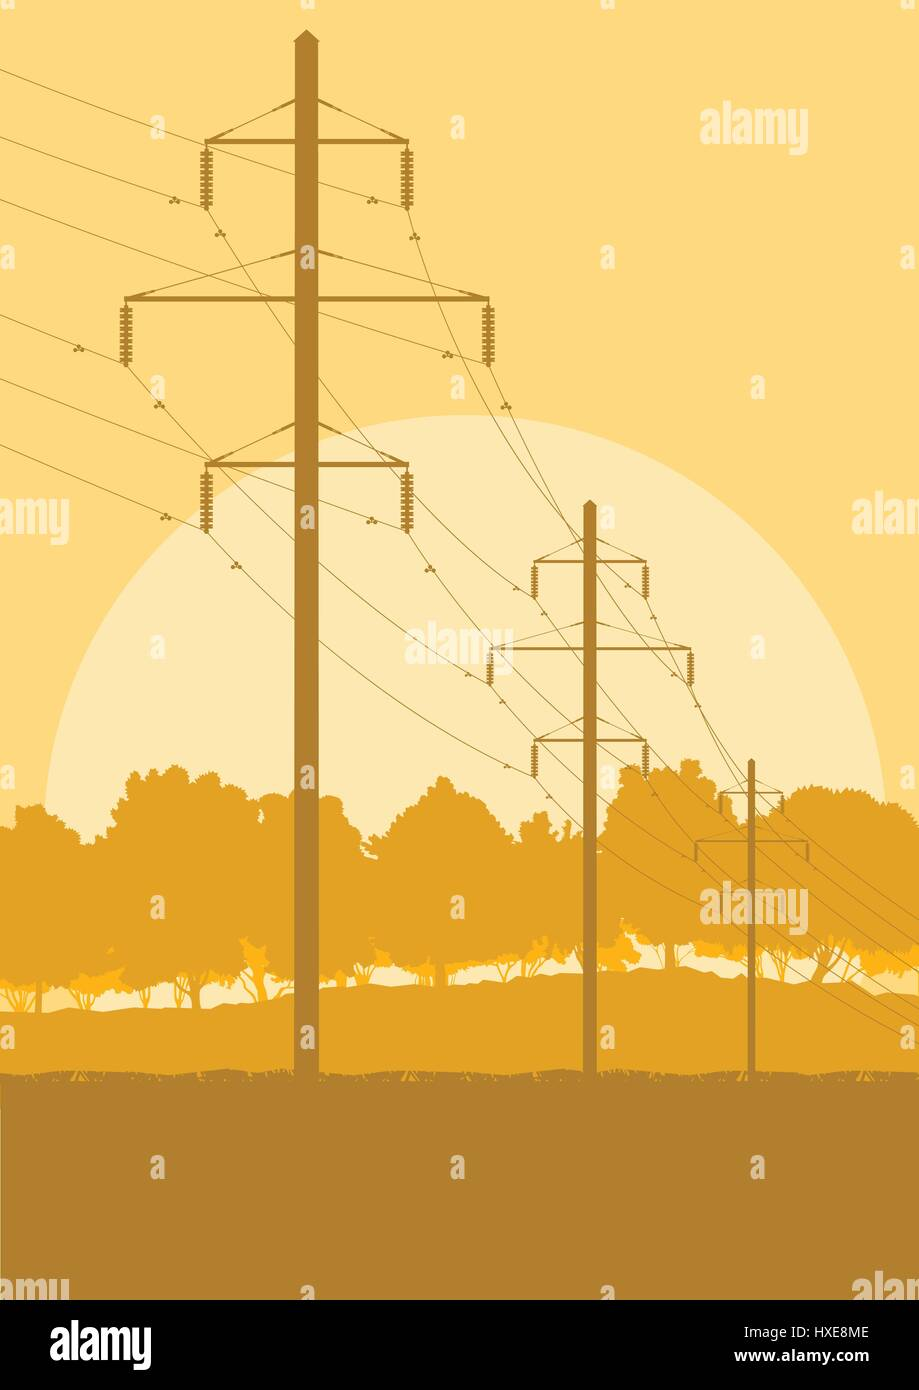 medium resolution of energy distribution high voltage power line tower sunset landscape with wires and trees vector background